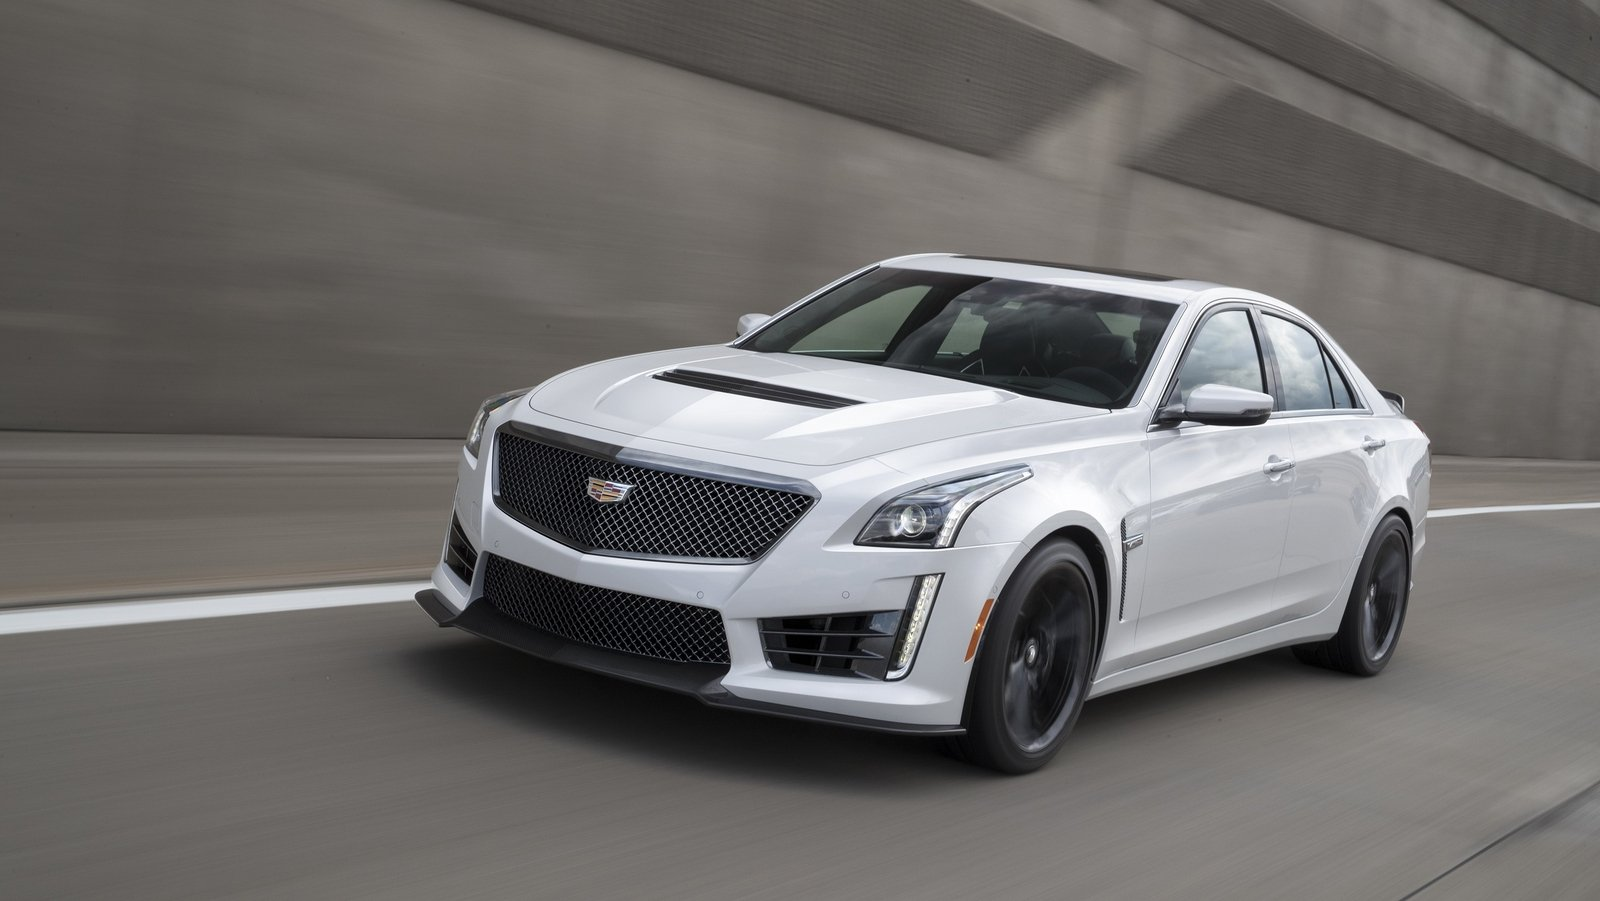 2017 cadillac cts v with carbon black sport package picture 681796 car review top speed. Black Bedroom Furniture Sets. Home Design Ideas